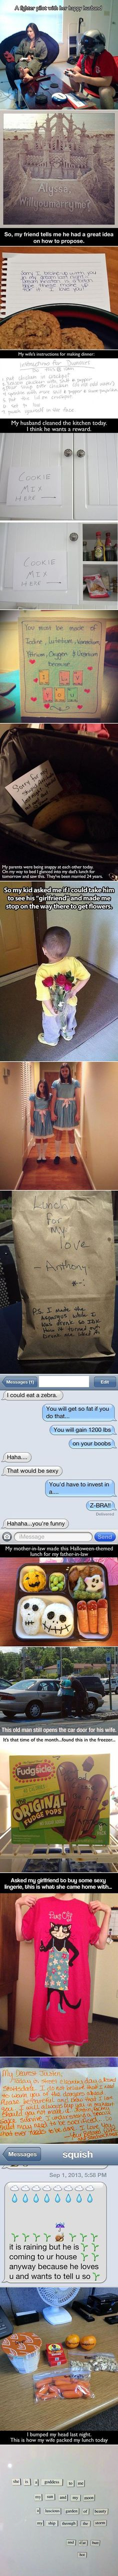 Love comes in many forms :) This is awesome!